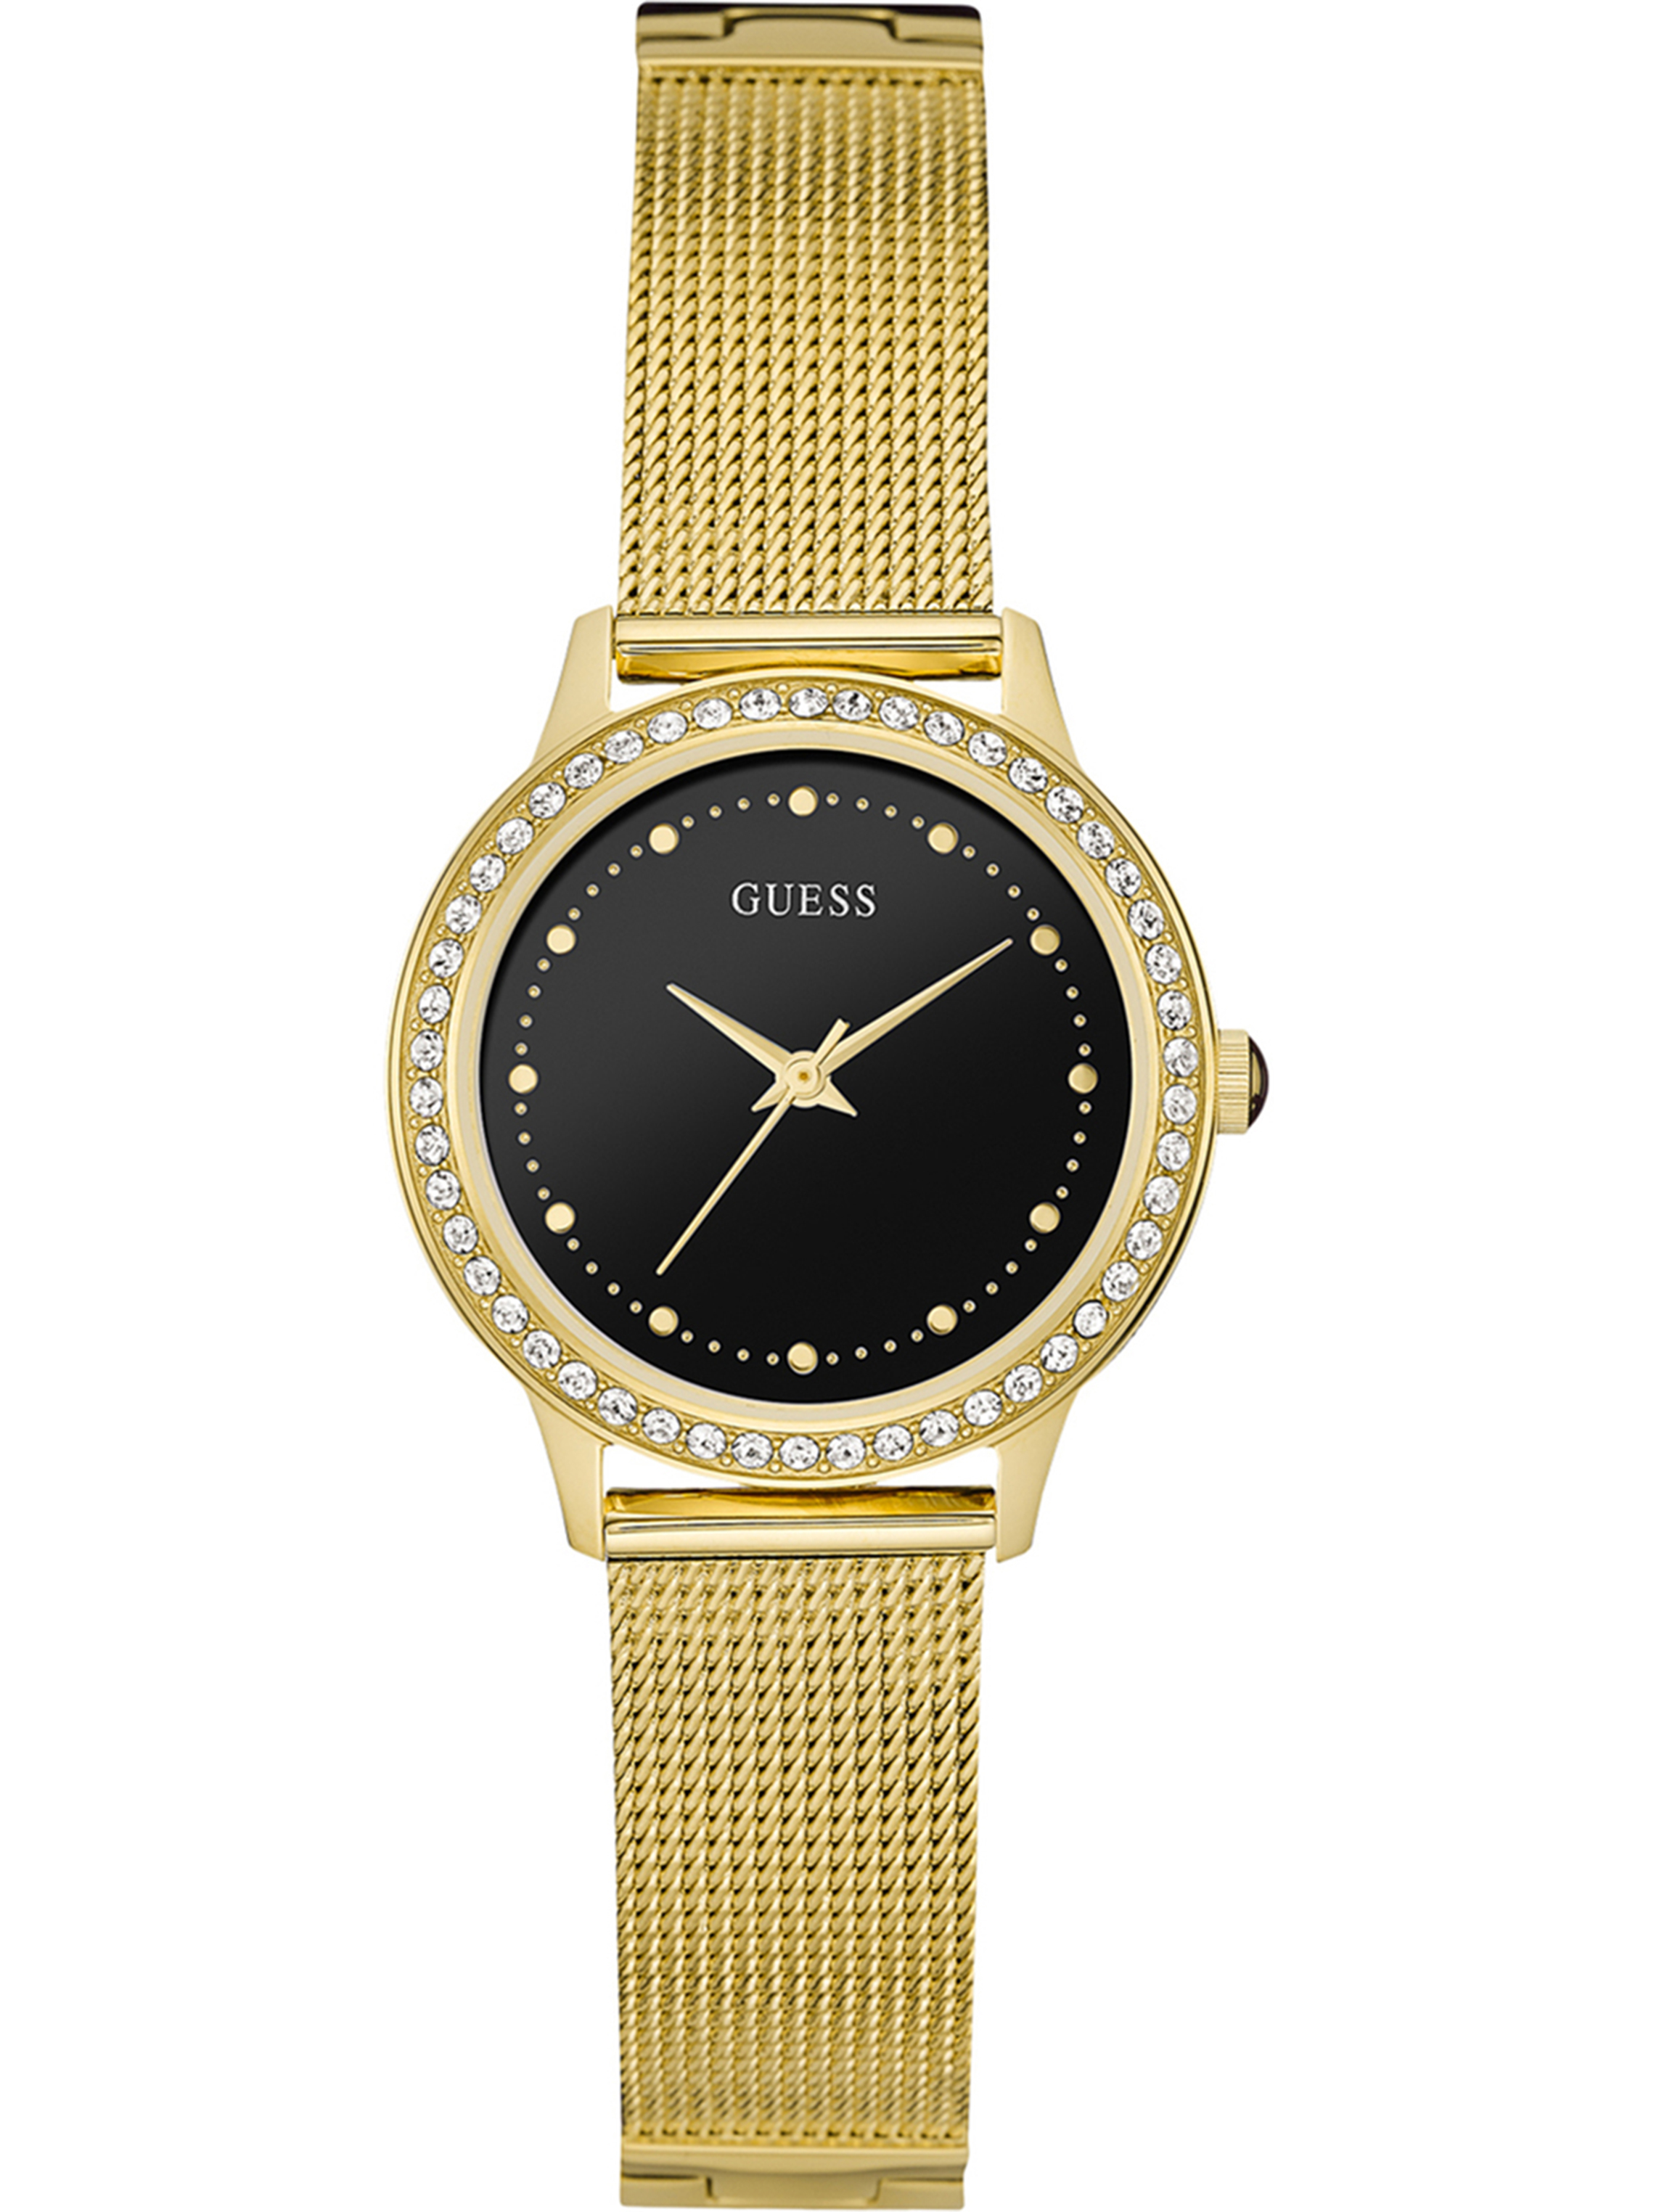 W0647L8,Ladies Dress,Stainless Steel,Gold Tone,Crystal Accented Bezel, WR